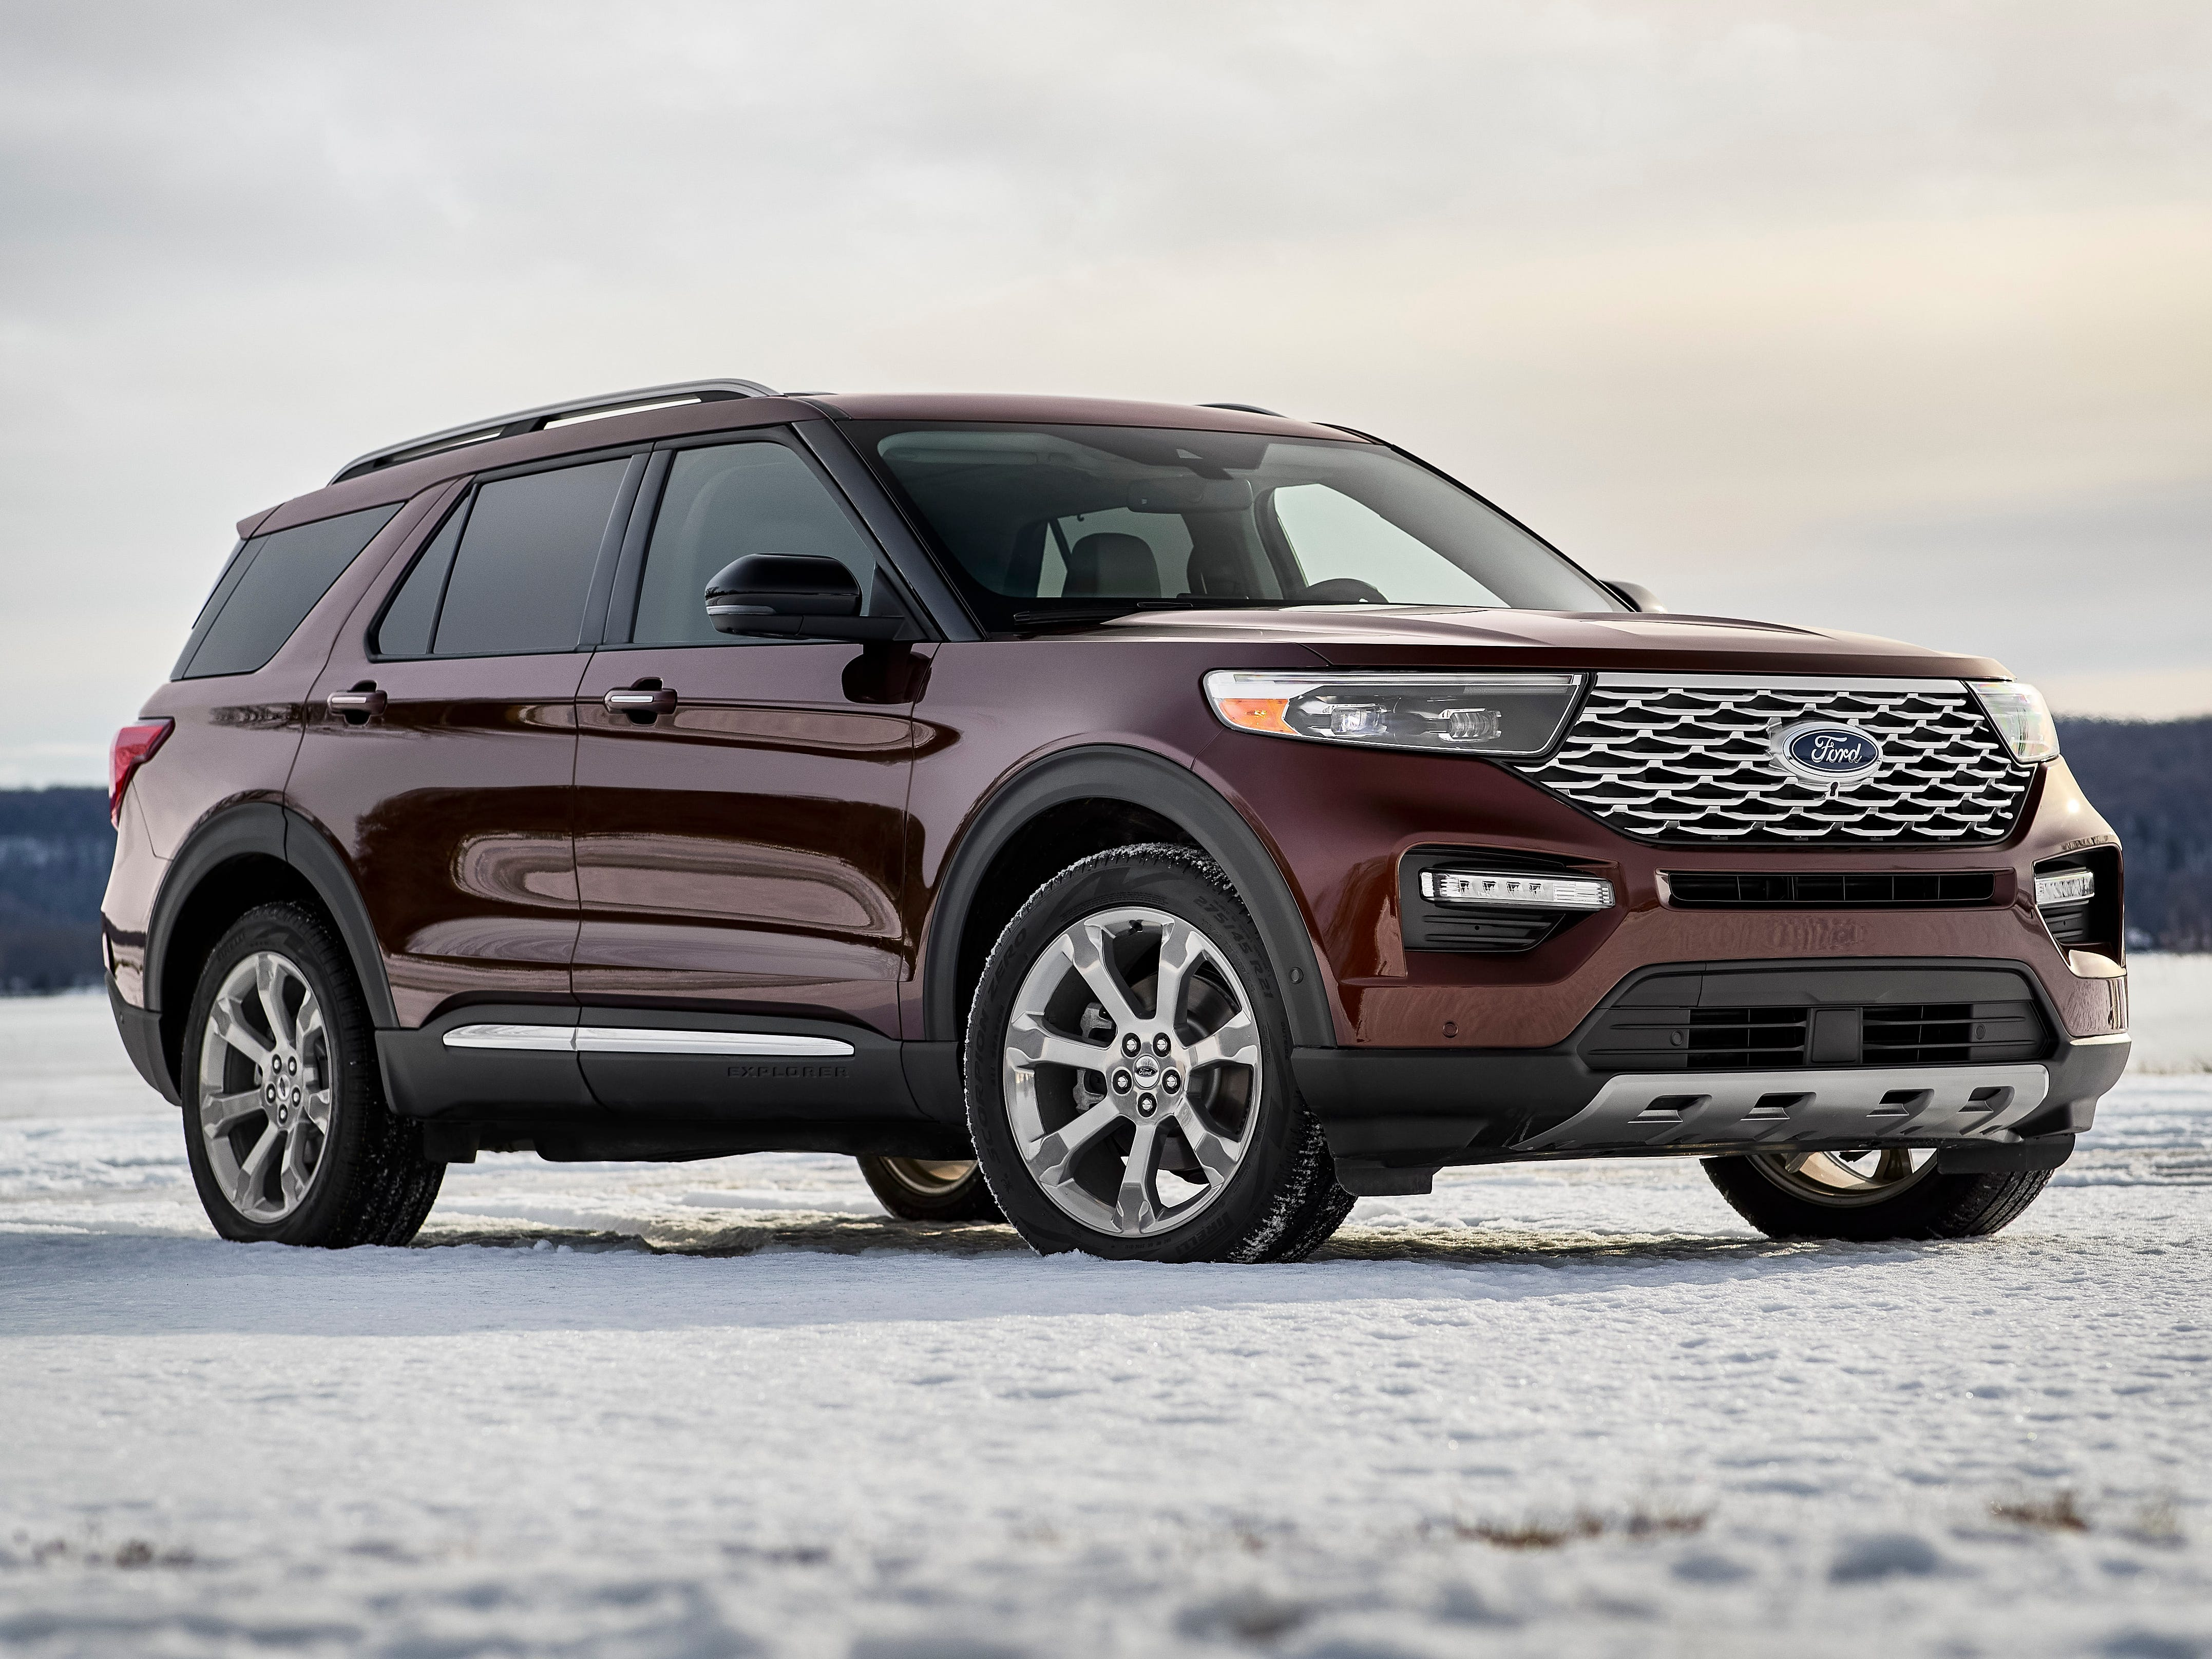 This is the 2020 Ford Explorer Platinum model. The new model Explorer, which is expected to be available this summer, features more power and space, and new smart technology.